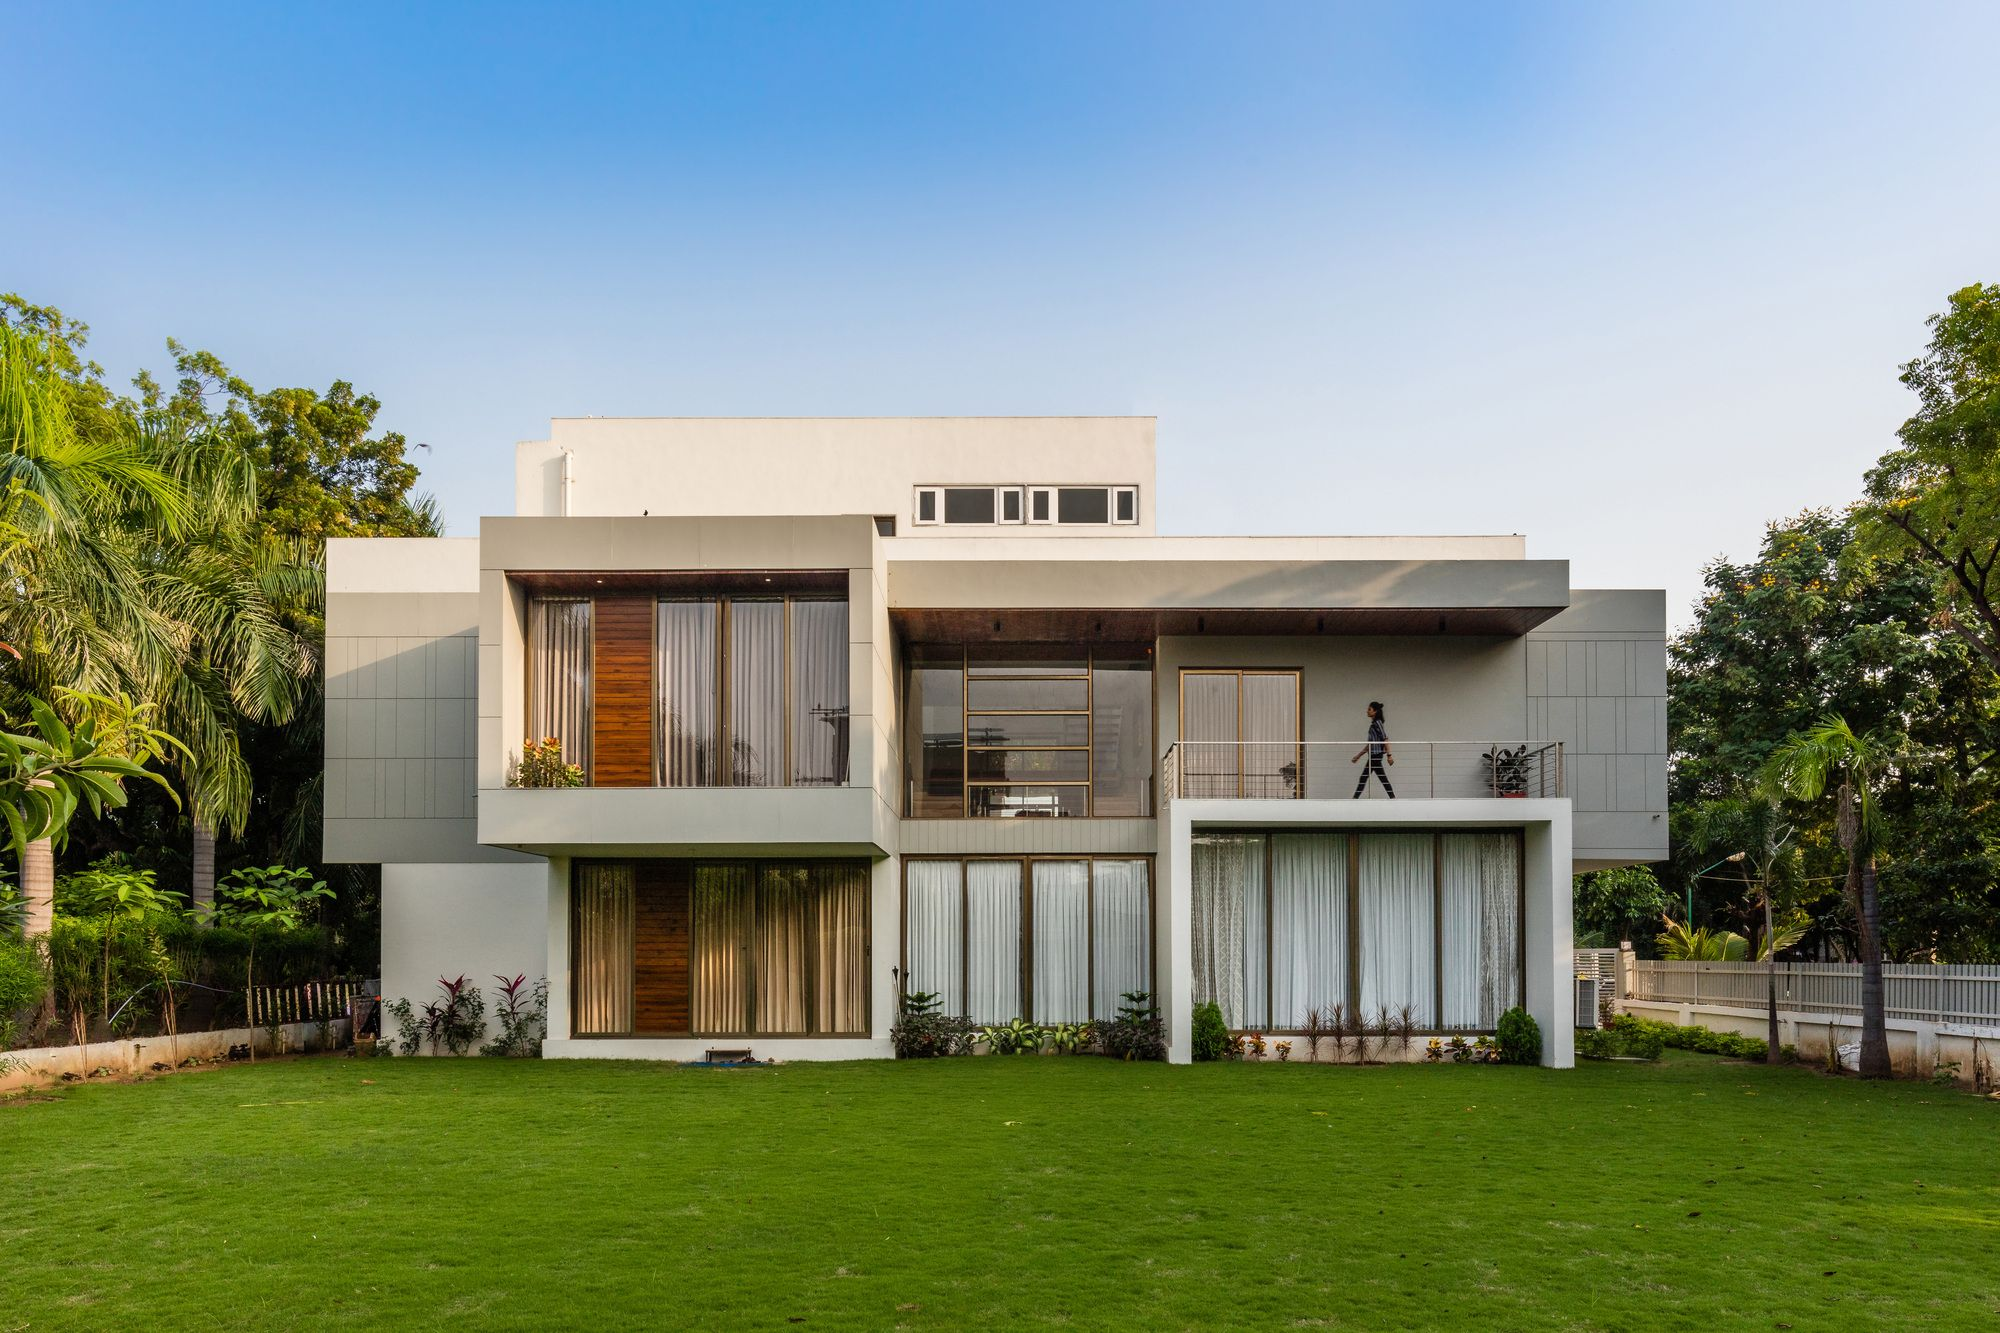 3f94b0fb728ec13364f063a1ff563387 - View Small House Design Archdaily Pictures